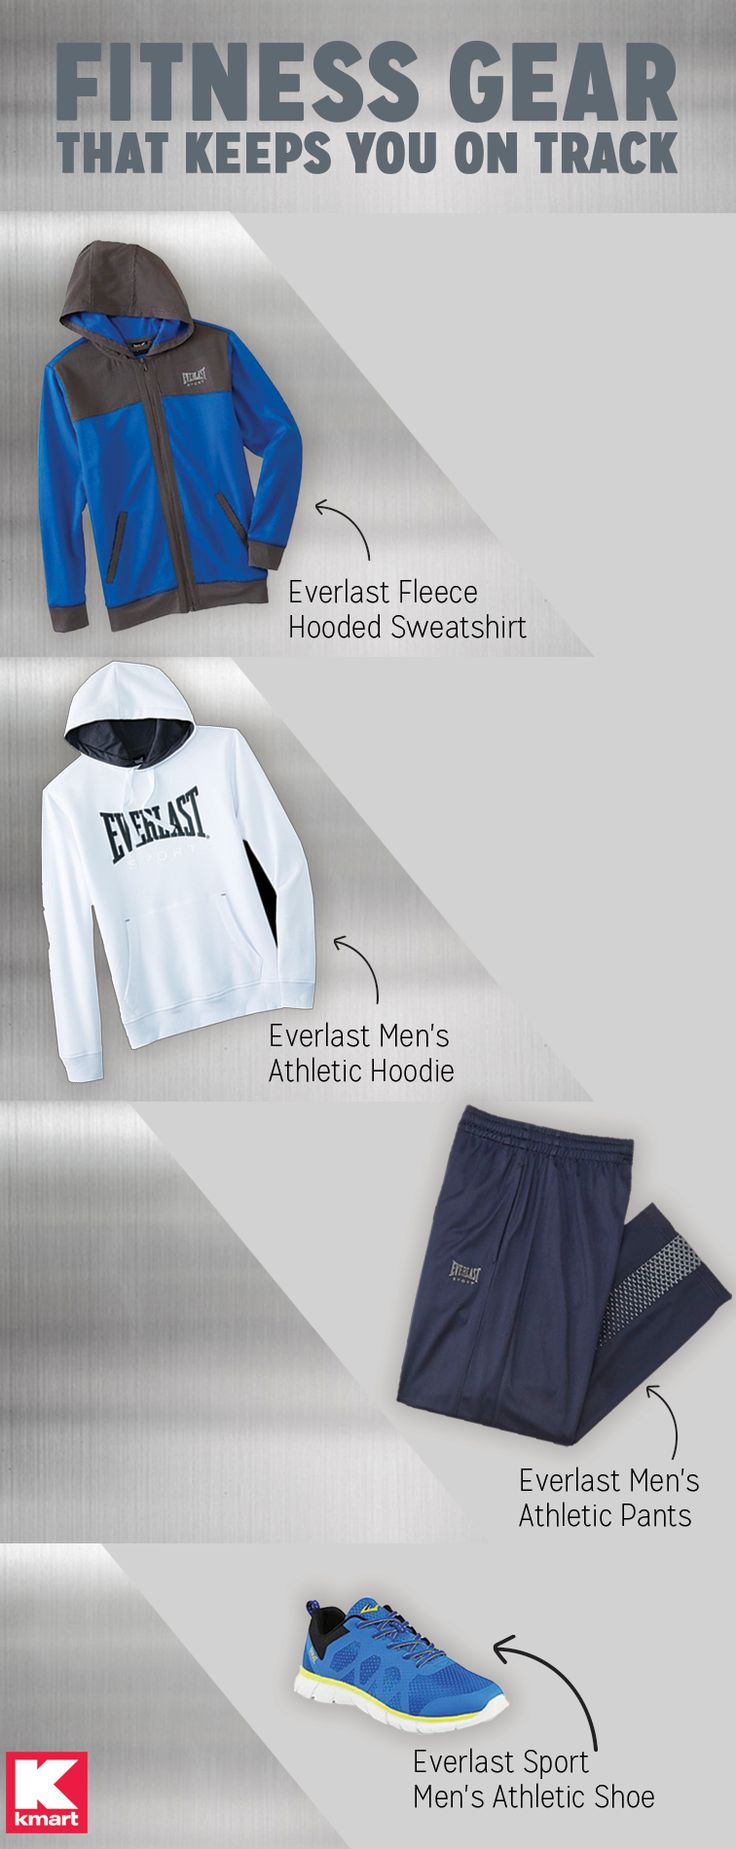 Discover kmart s variety of activewear picks for even the hard to shop for members from everlast comfy sweatshirts